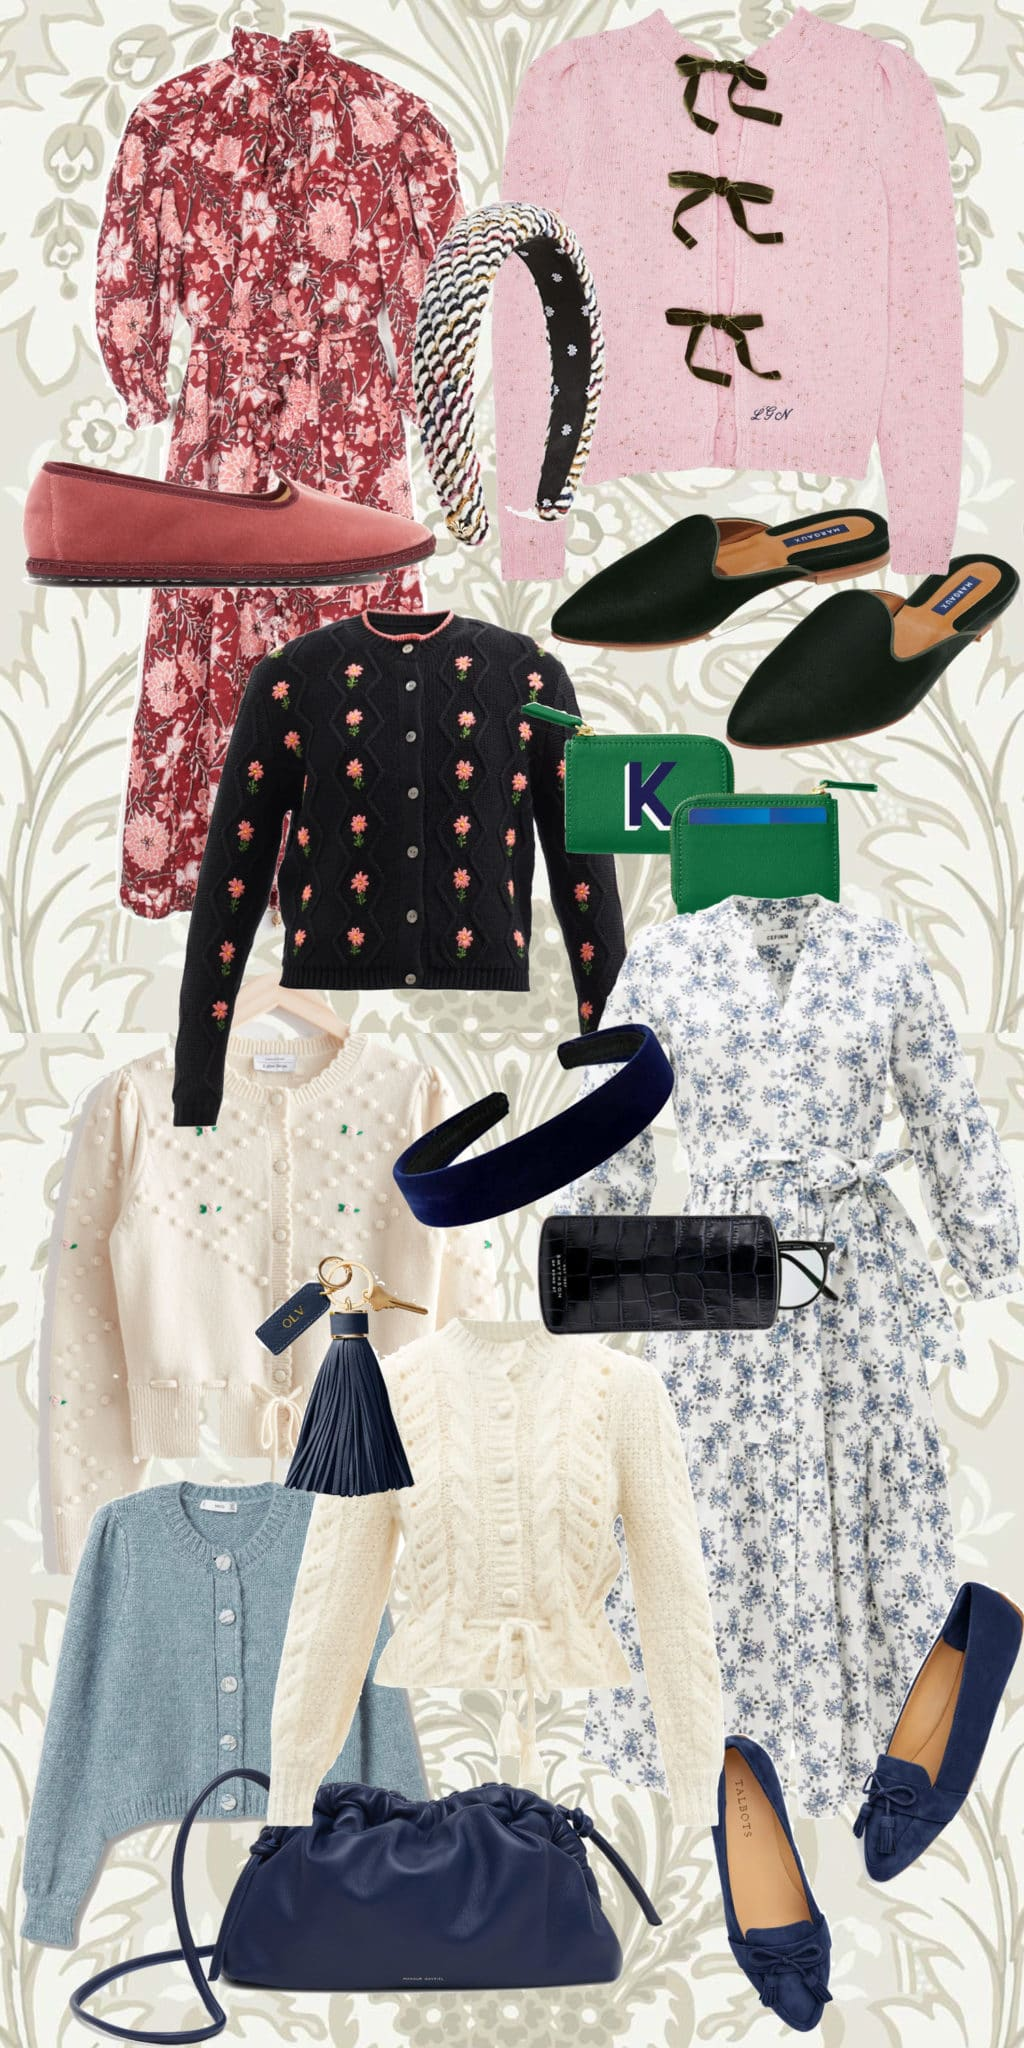 accessorizing summer dresses for fall